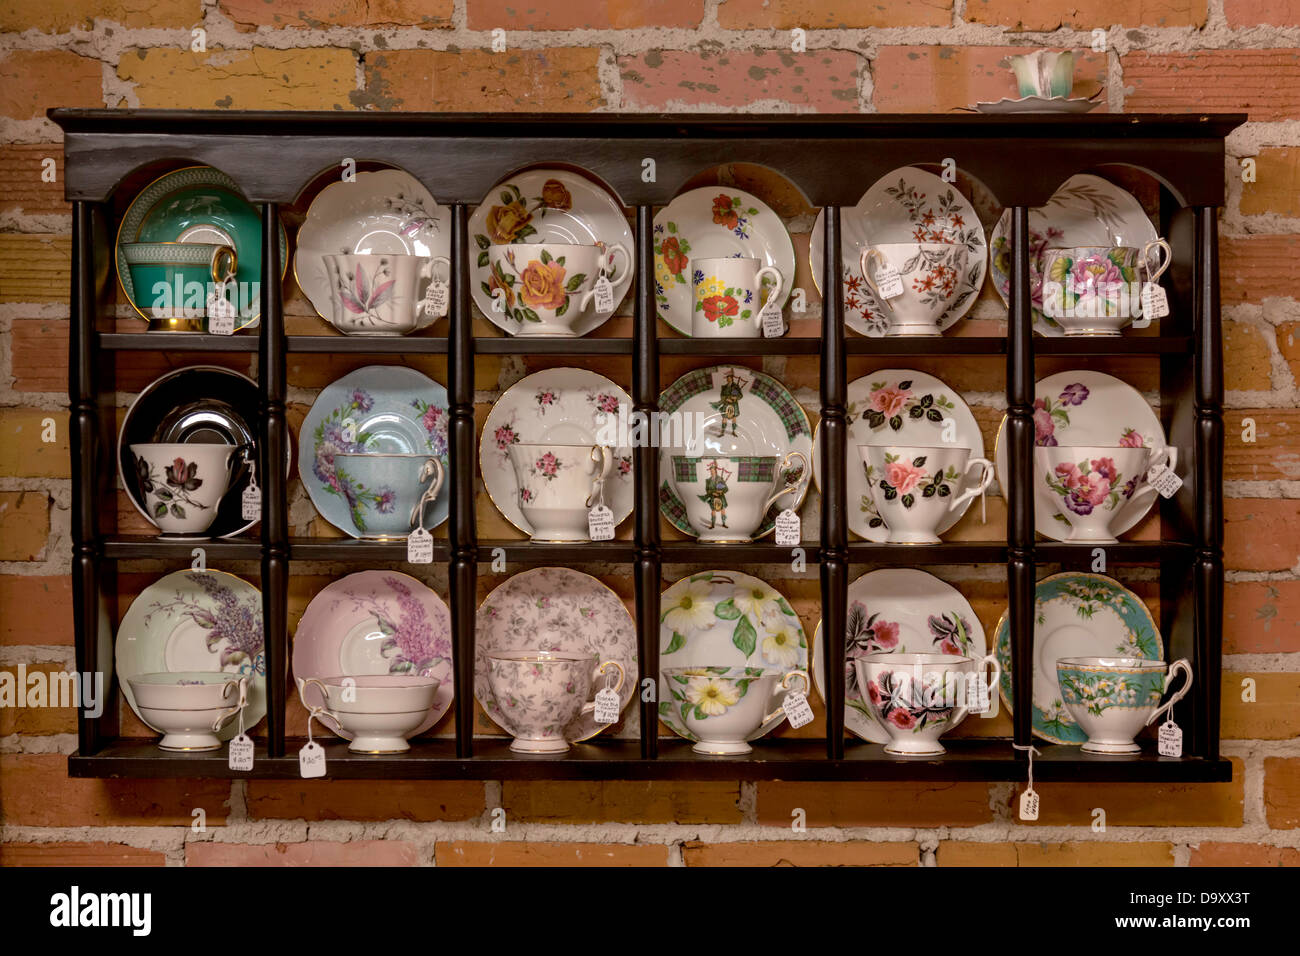 Antique China Tea Cups On Display In A Wooden Wall Mounted Cabinet.